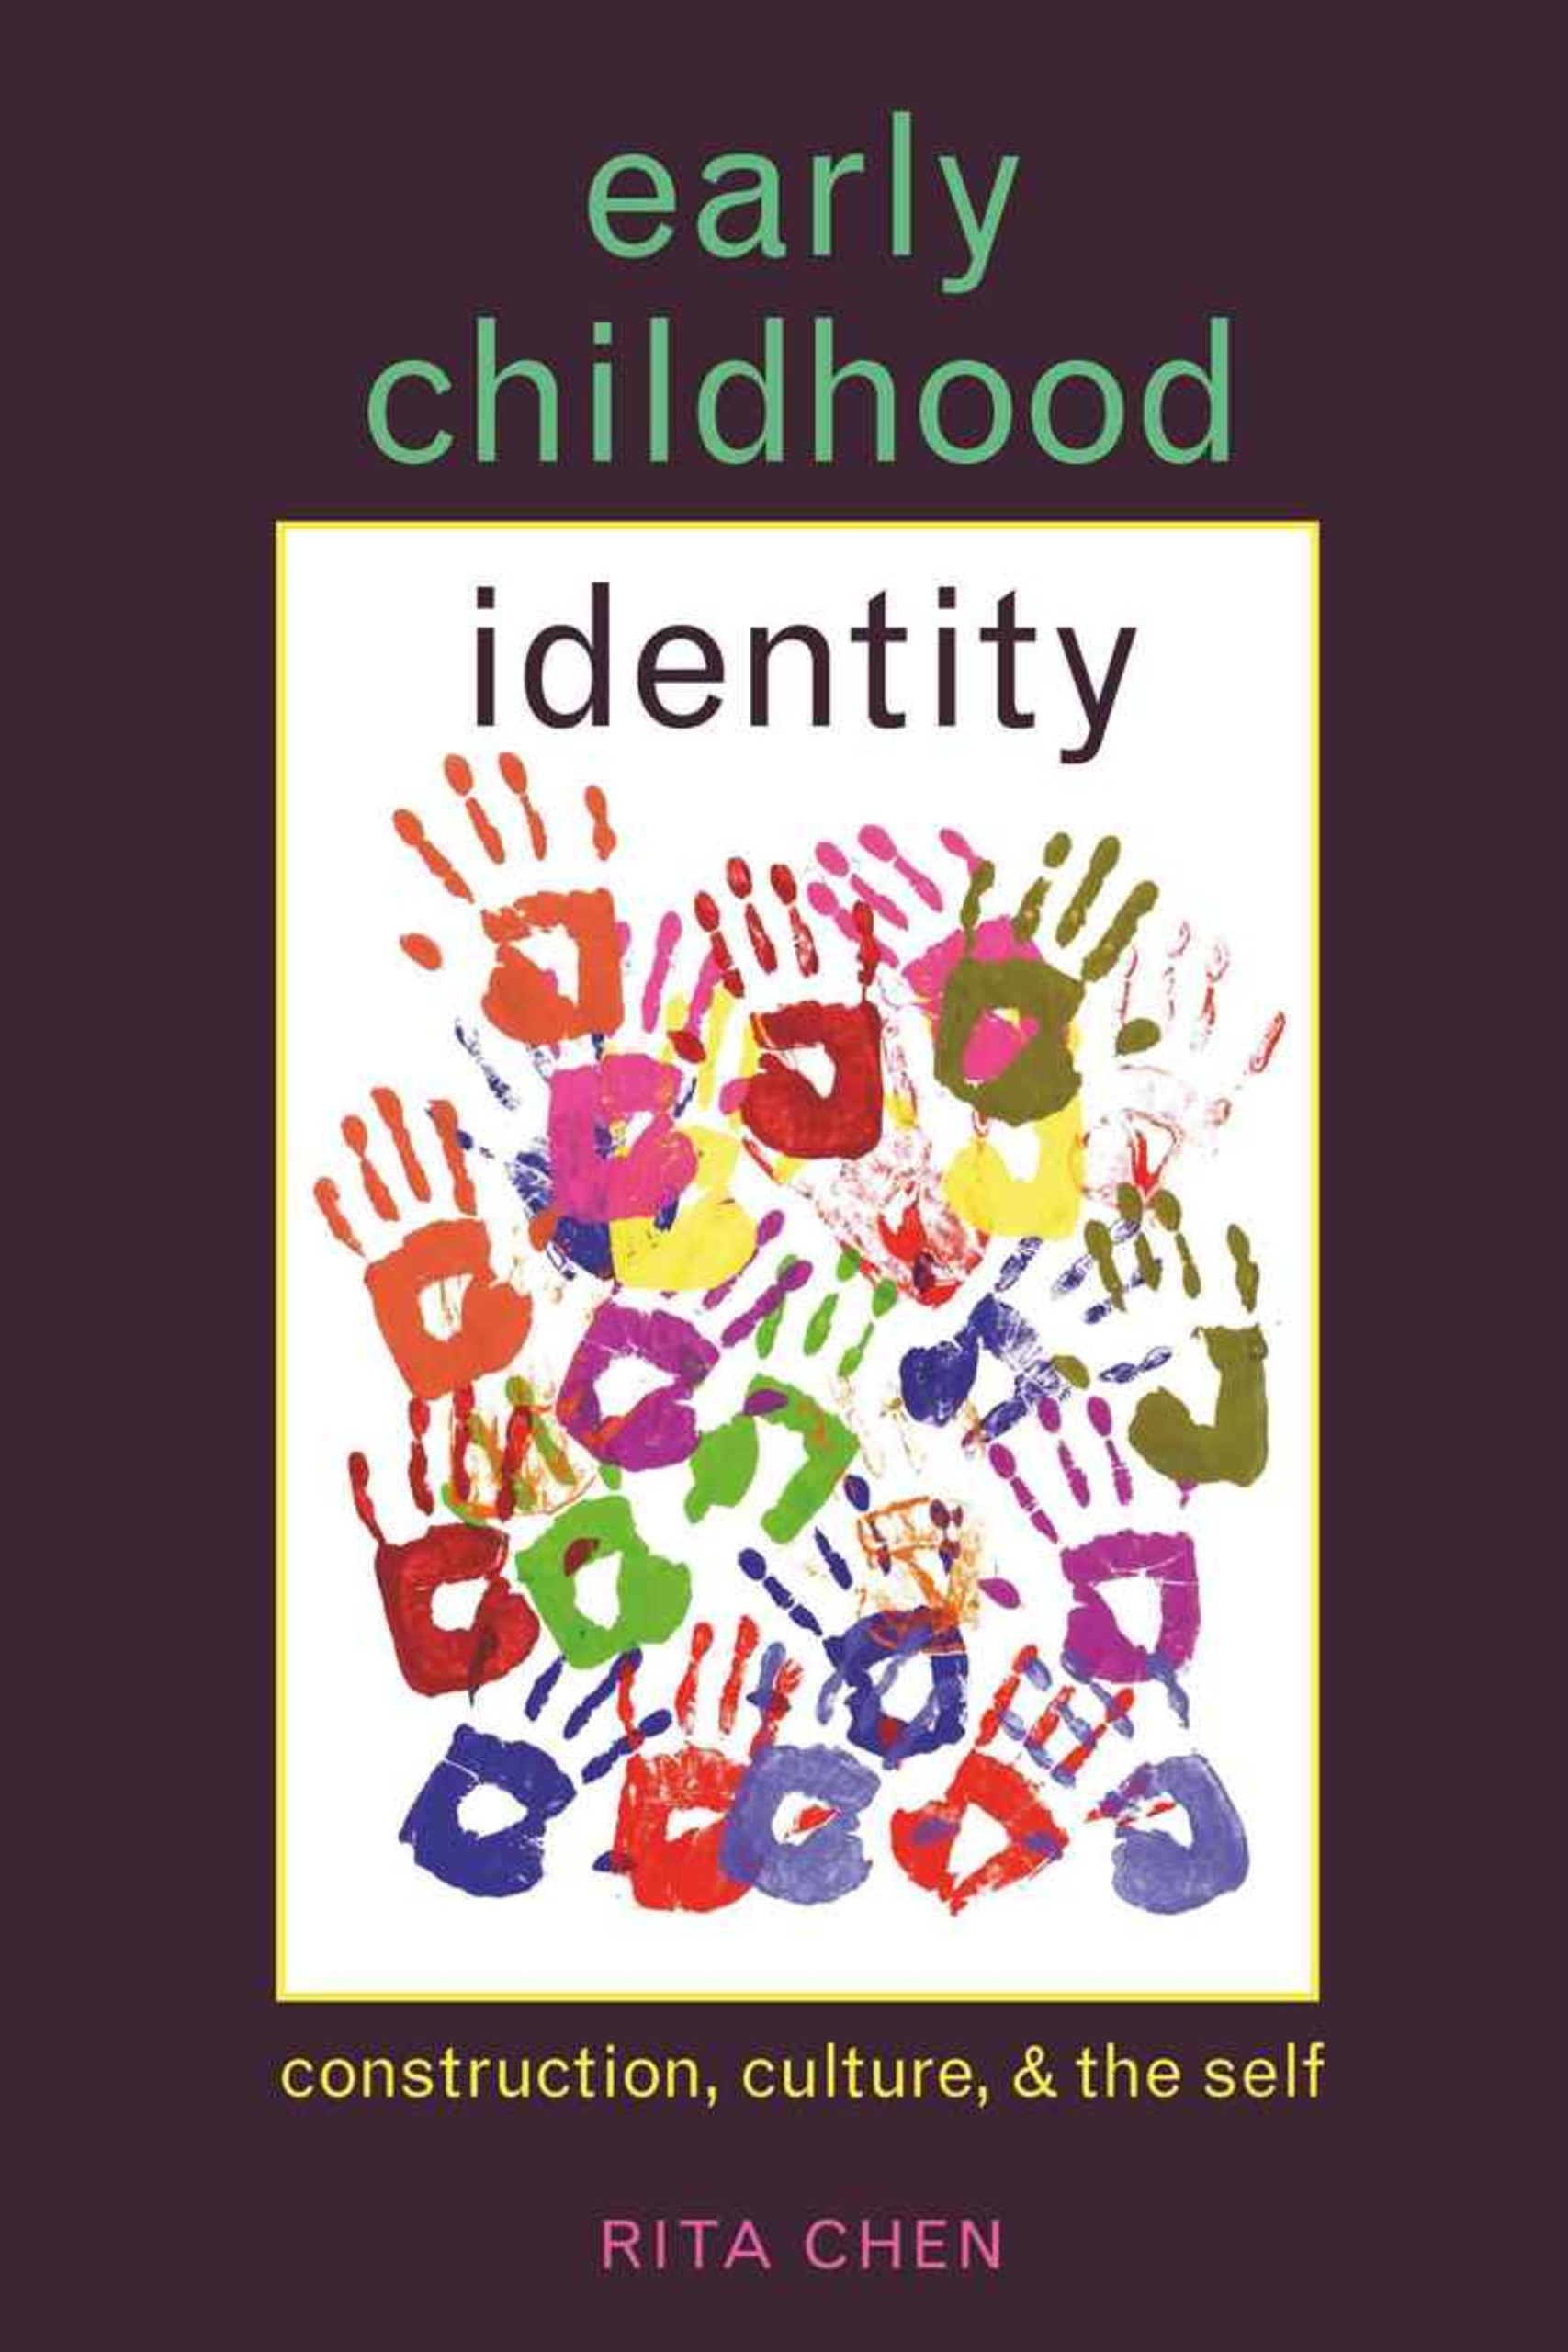 Title: Early Childhood Identity